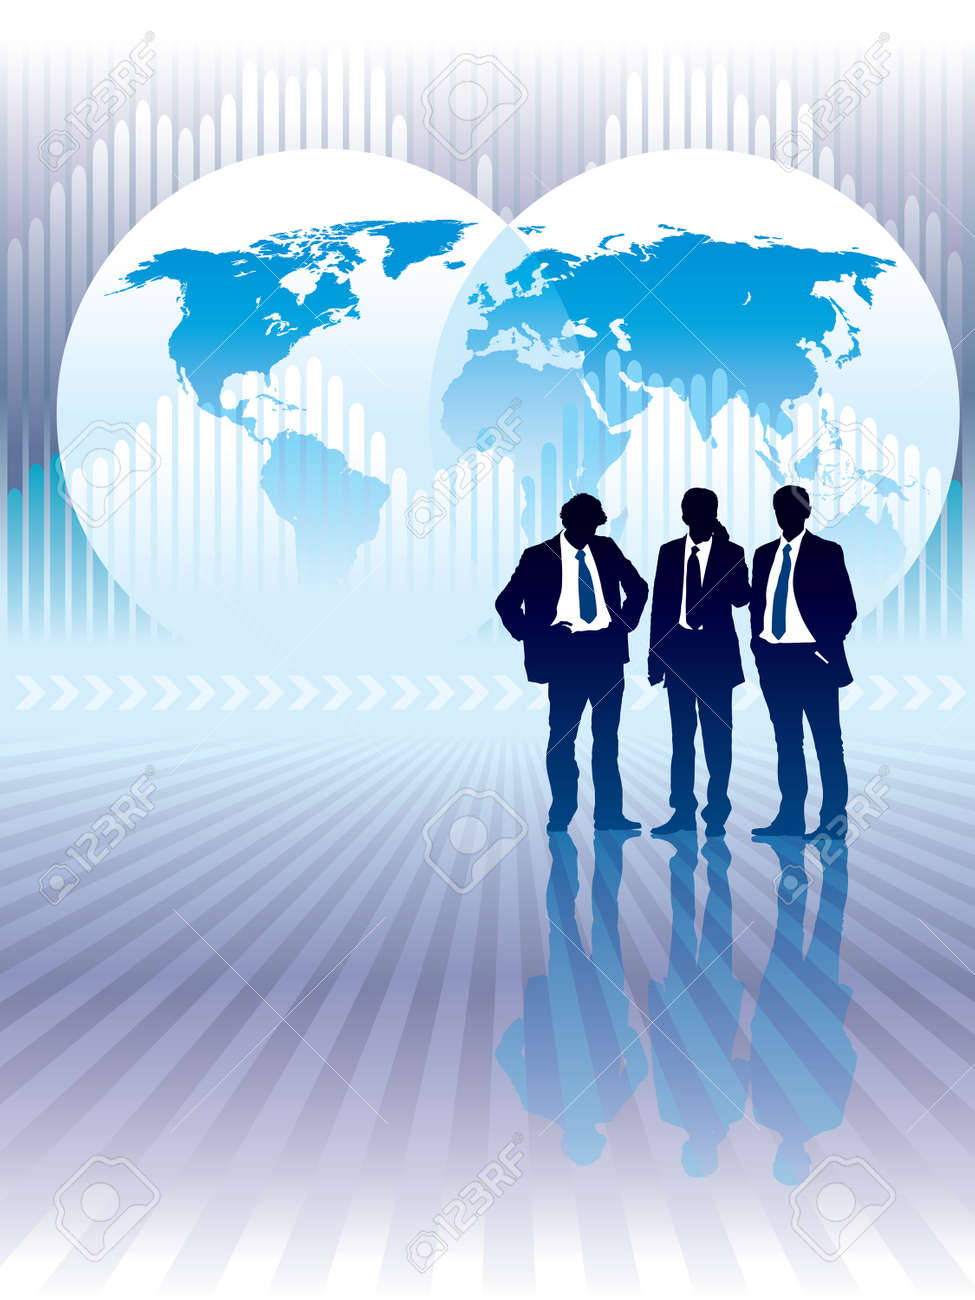 People are standing world map and graph in the background people are standing world map and graph in the background conceptual business illustration gumiabroncs Choice Image